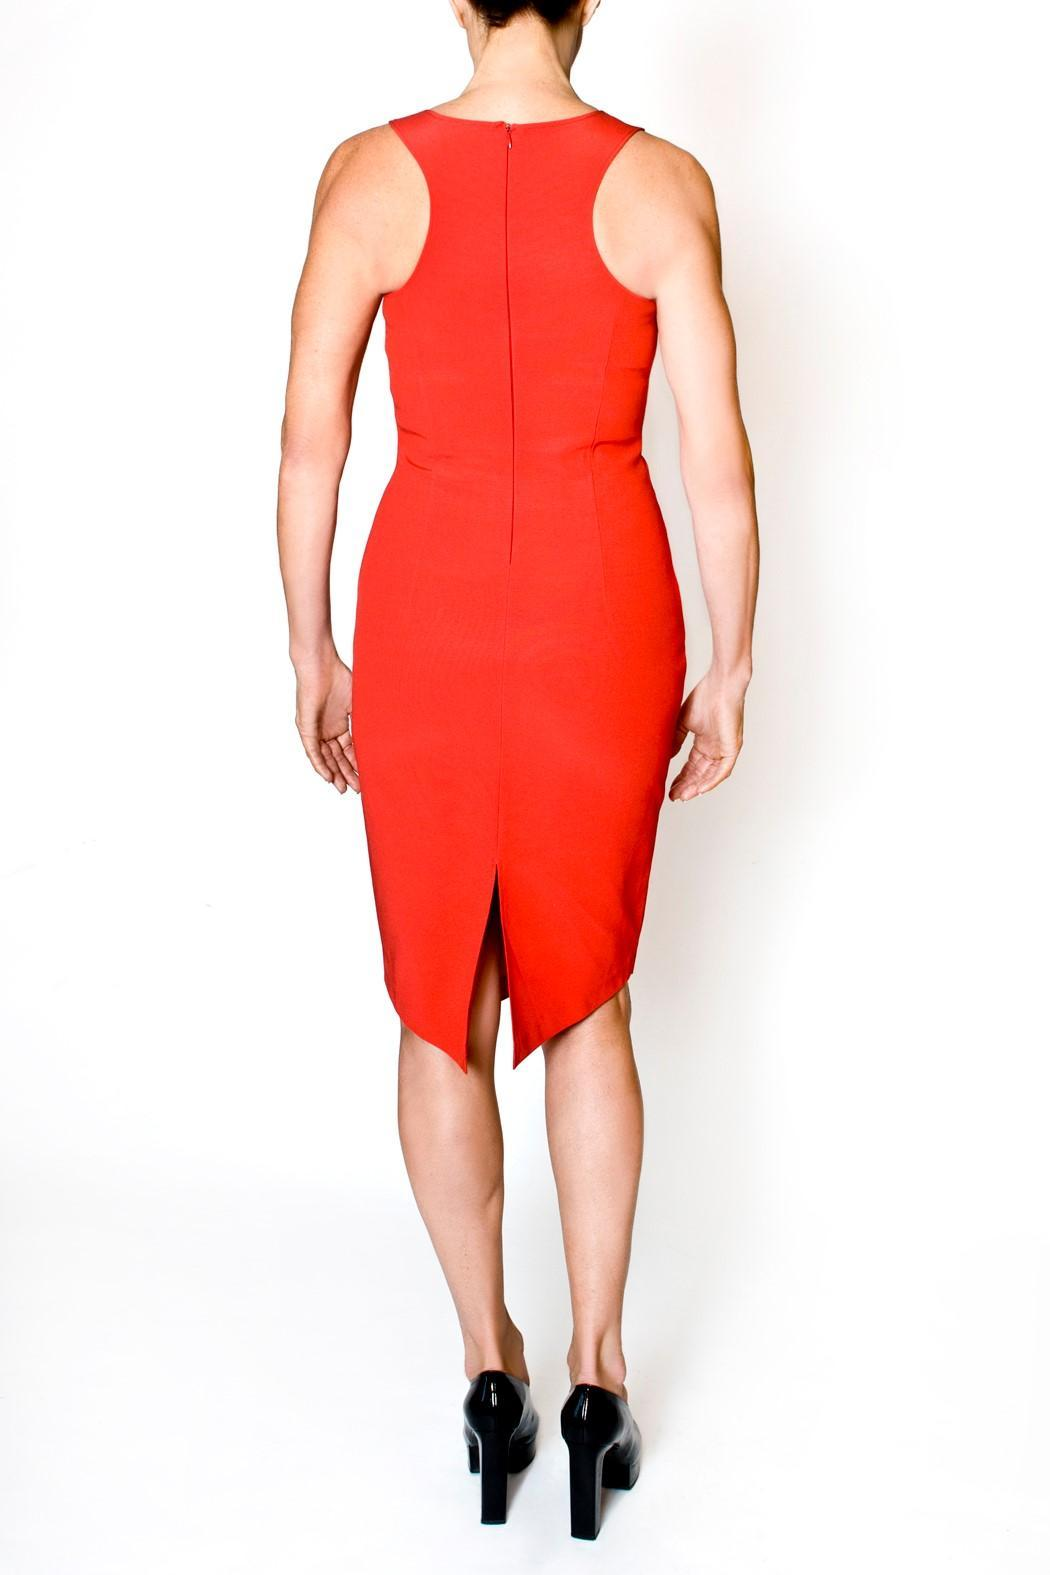 bella Forte Boutique Red Sheath Dress - Front Full Image